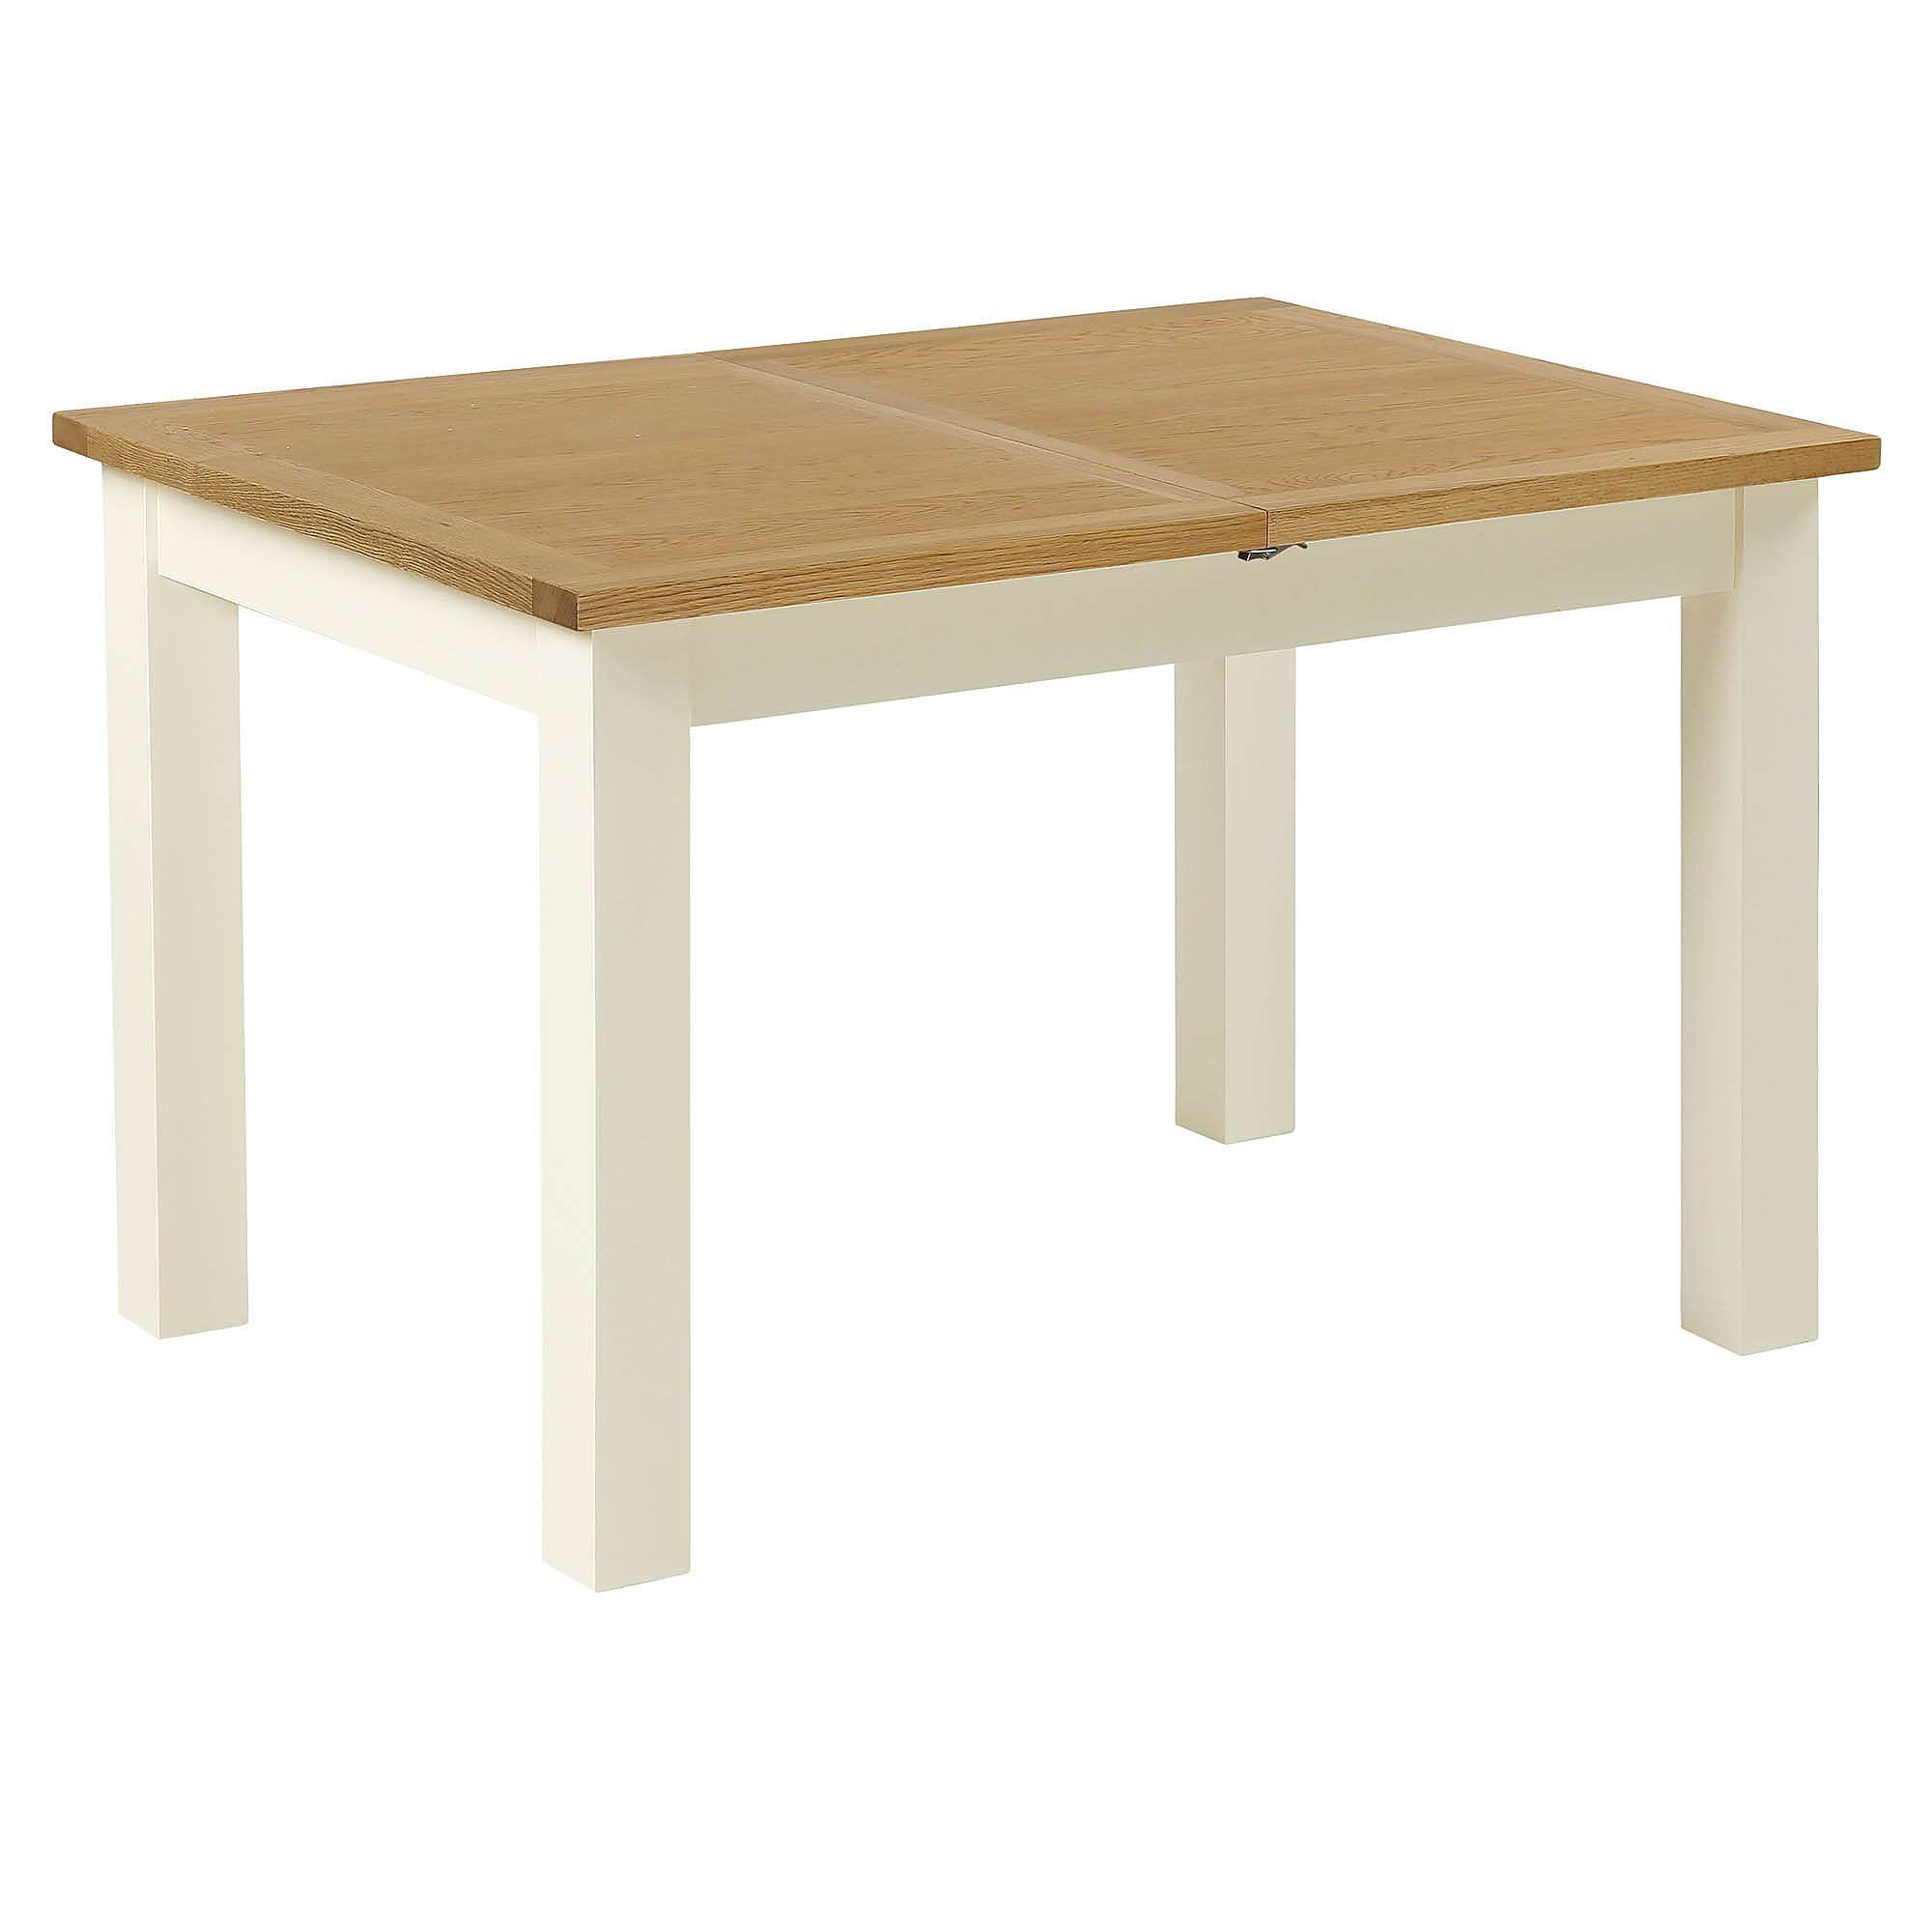 Sidmouth Cream Compact Extending Dining Table Extendable Dining